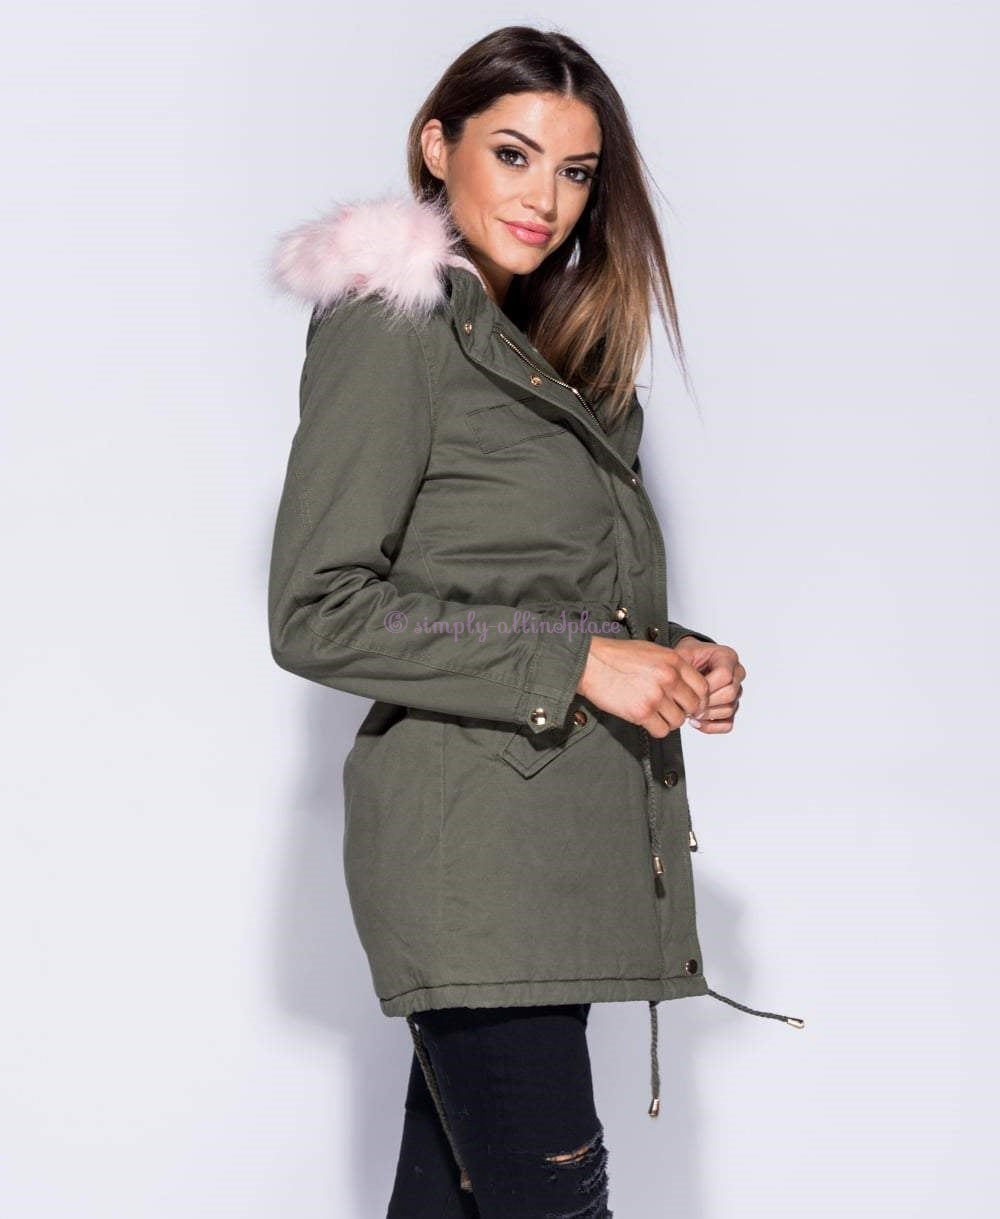 Khaki & Pink Faux Fur Trim Parka Jacket - Stock Item